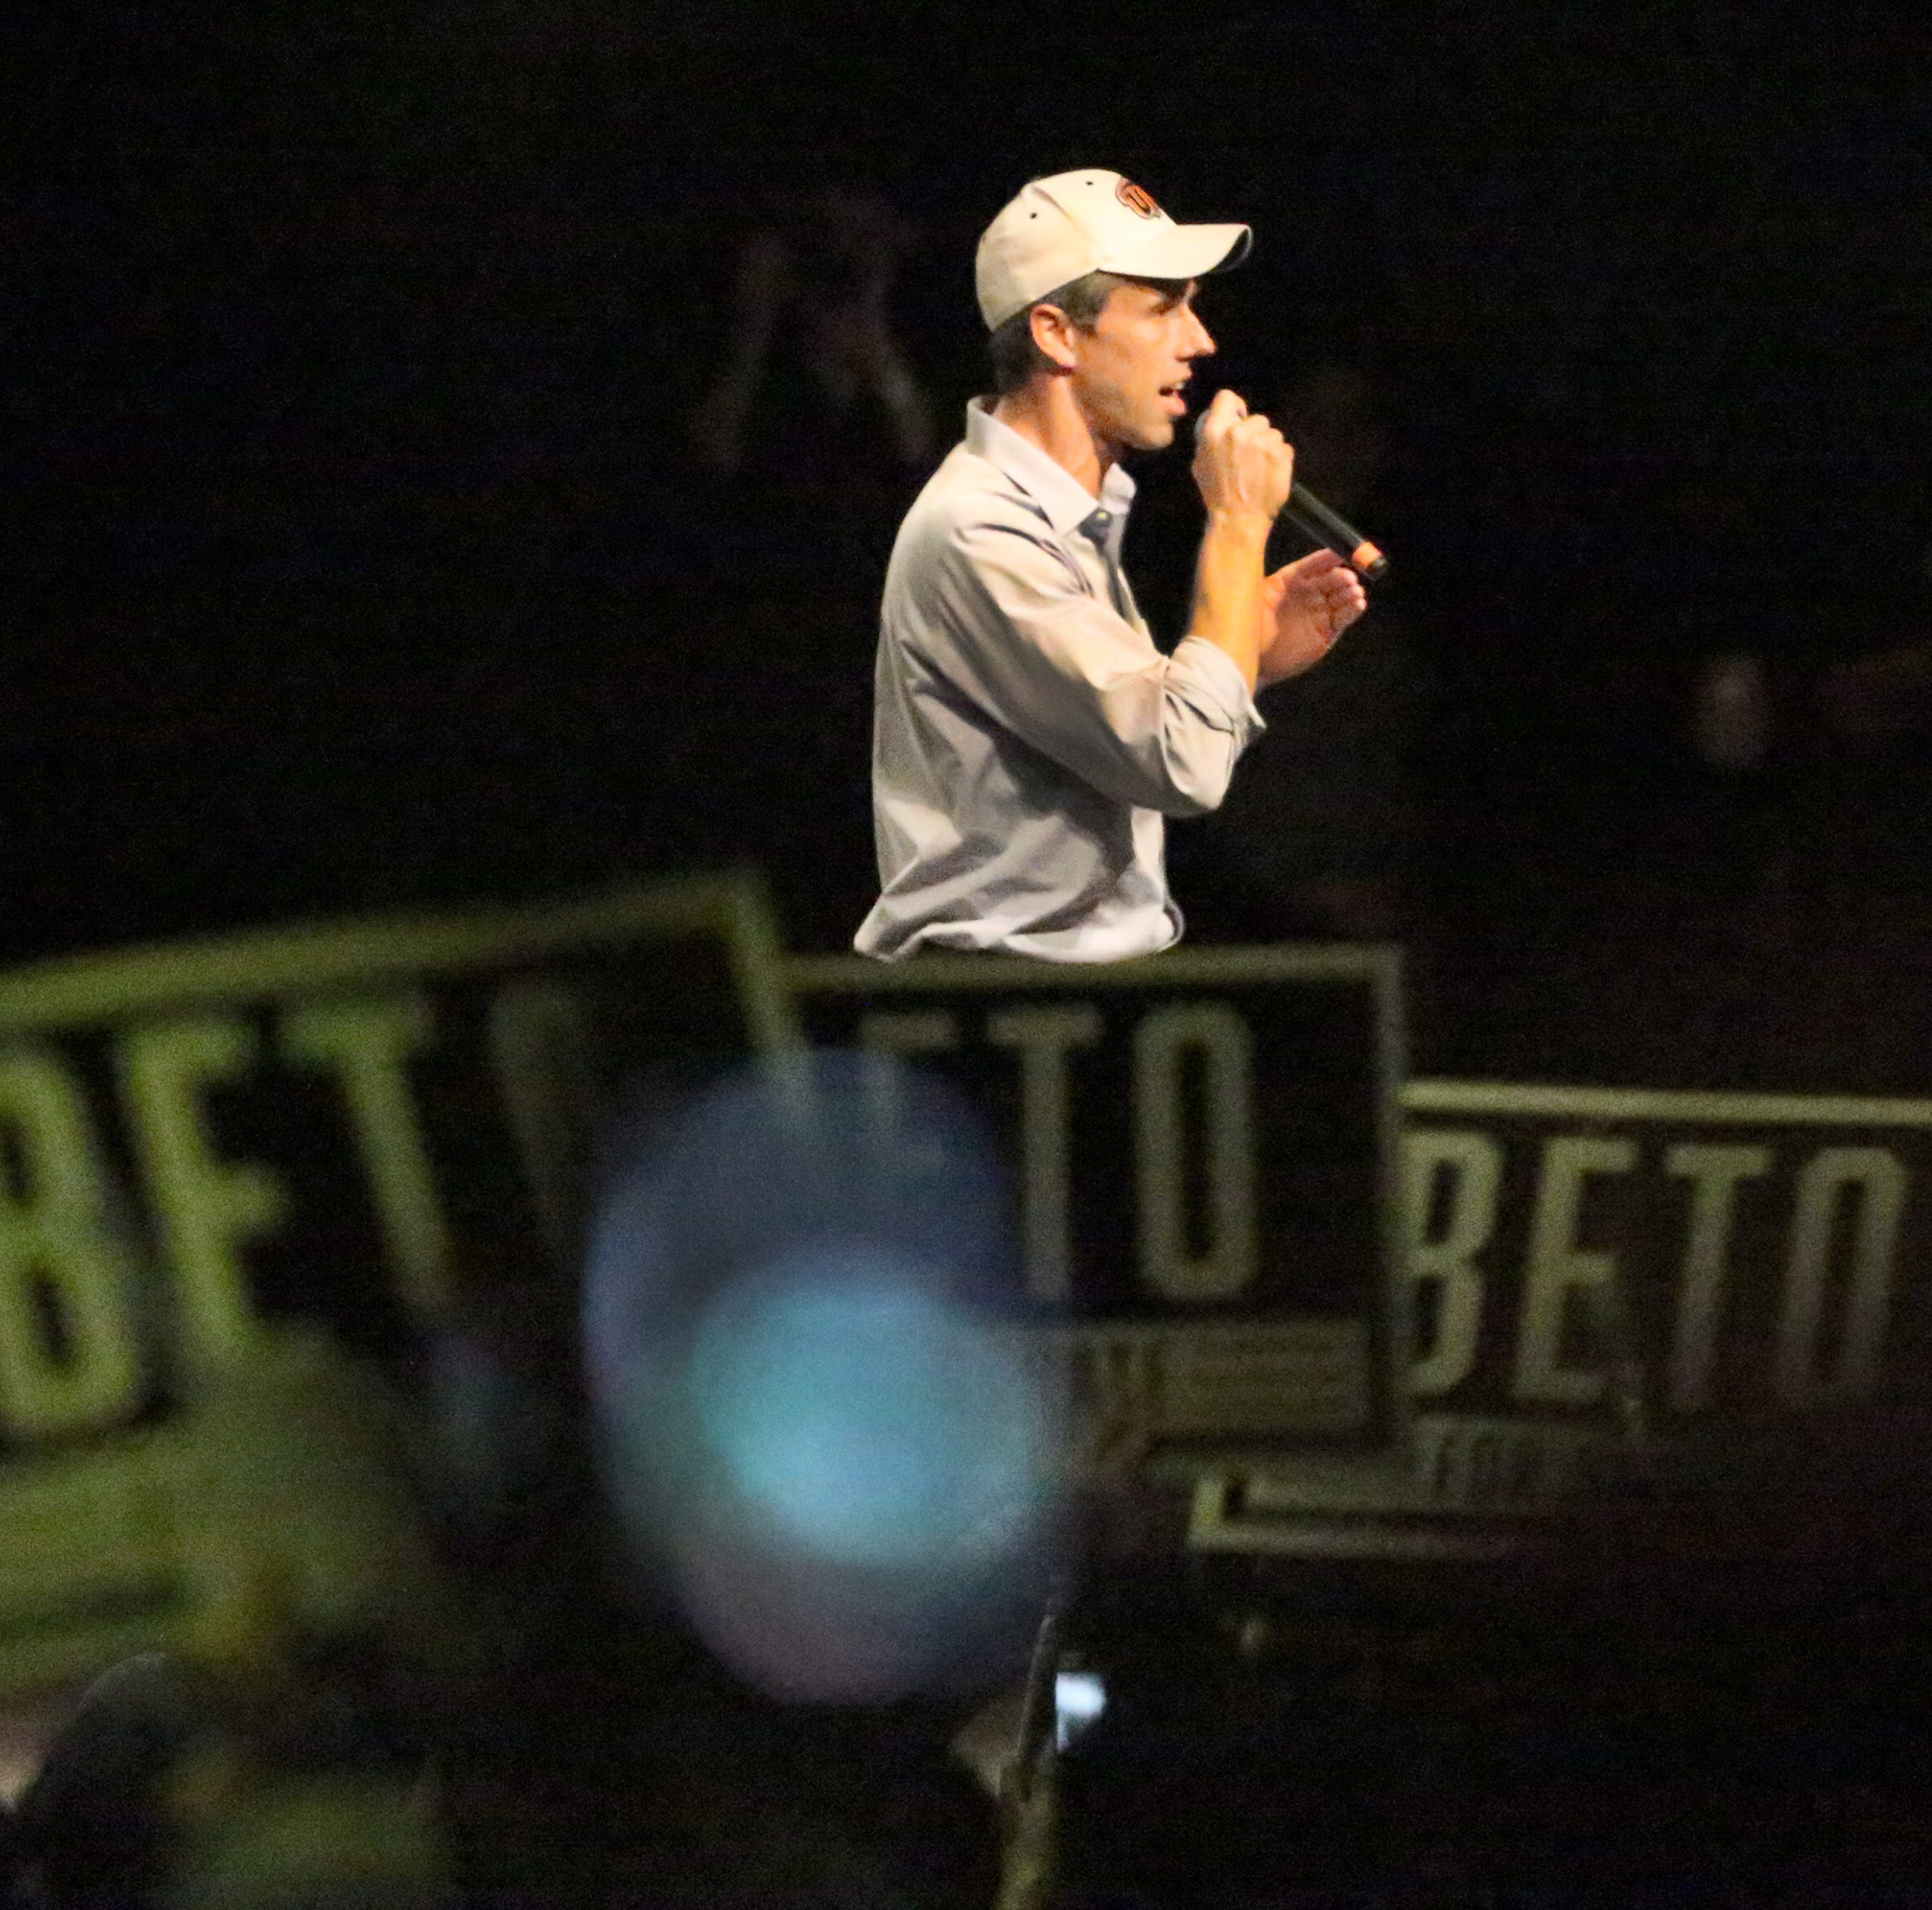 Beto O'Rourke joins Democrat letter to Mattis about troops at border for caravan